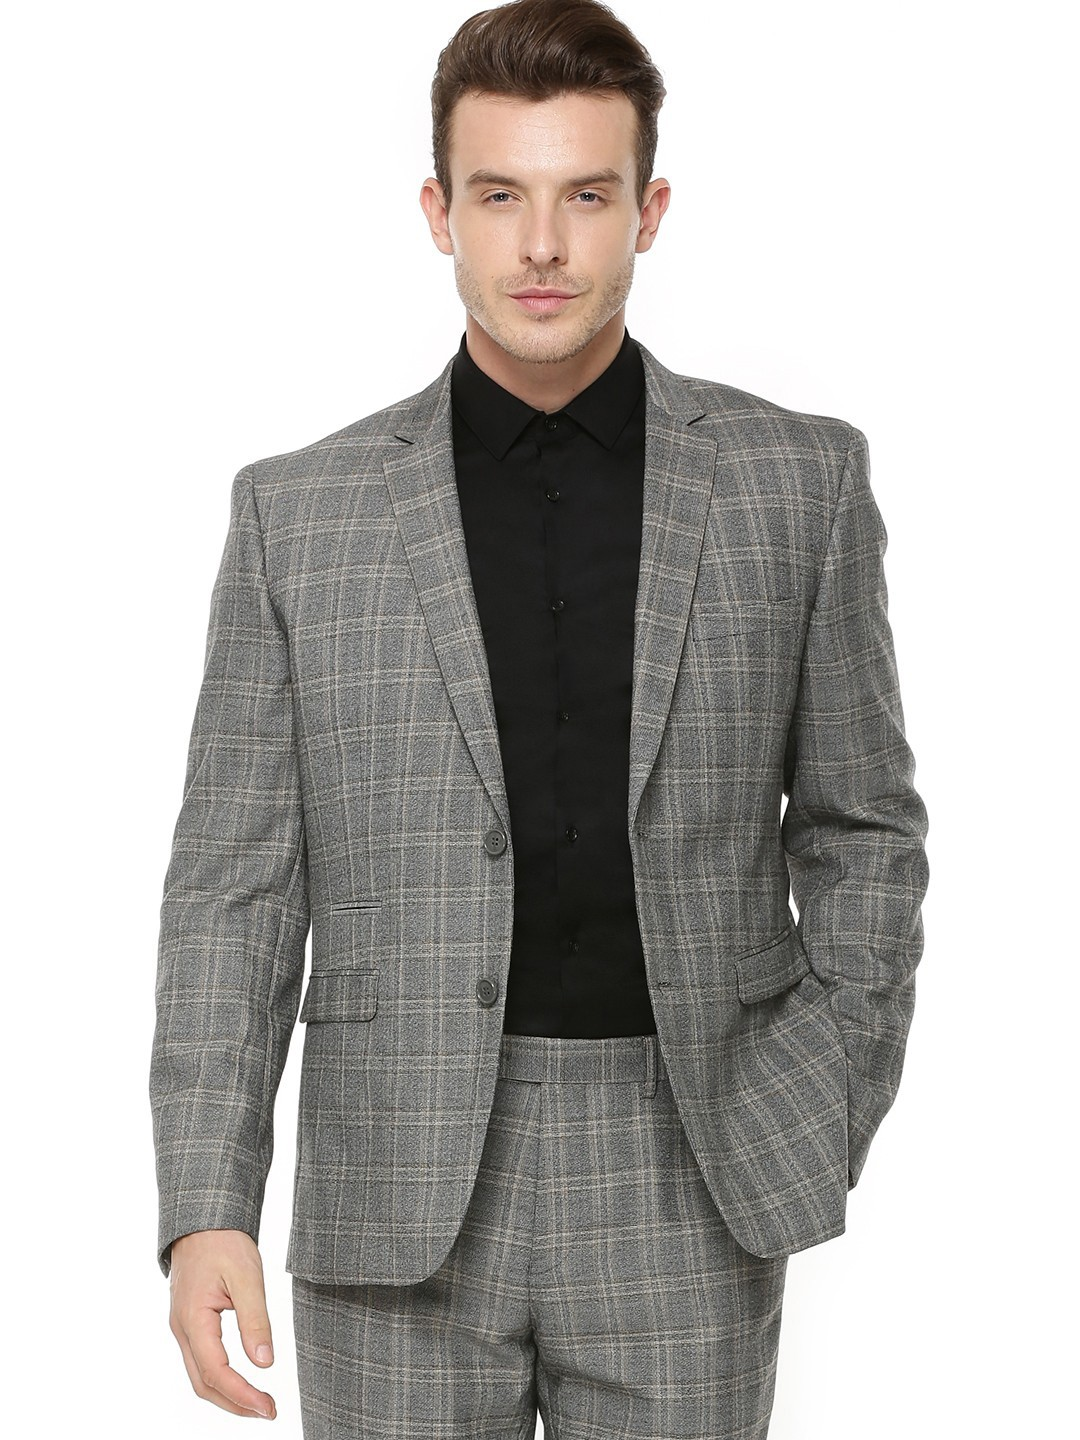 Best prices on Big and tall mens velvet blazer in Men's Suits / Sportcoats online. Visit Bizrate to find the best deals on top brands. Read reviews on Clothing & Accessories merchants and buy with confidence.